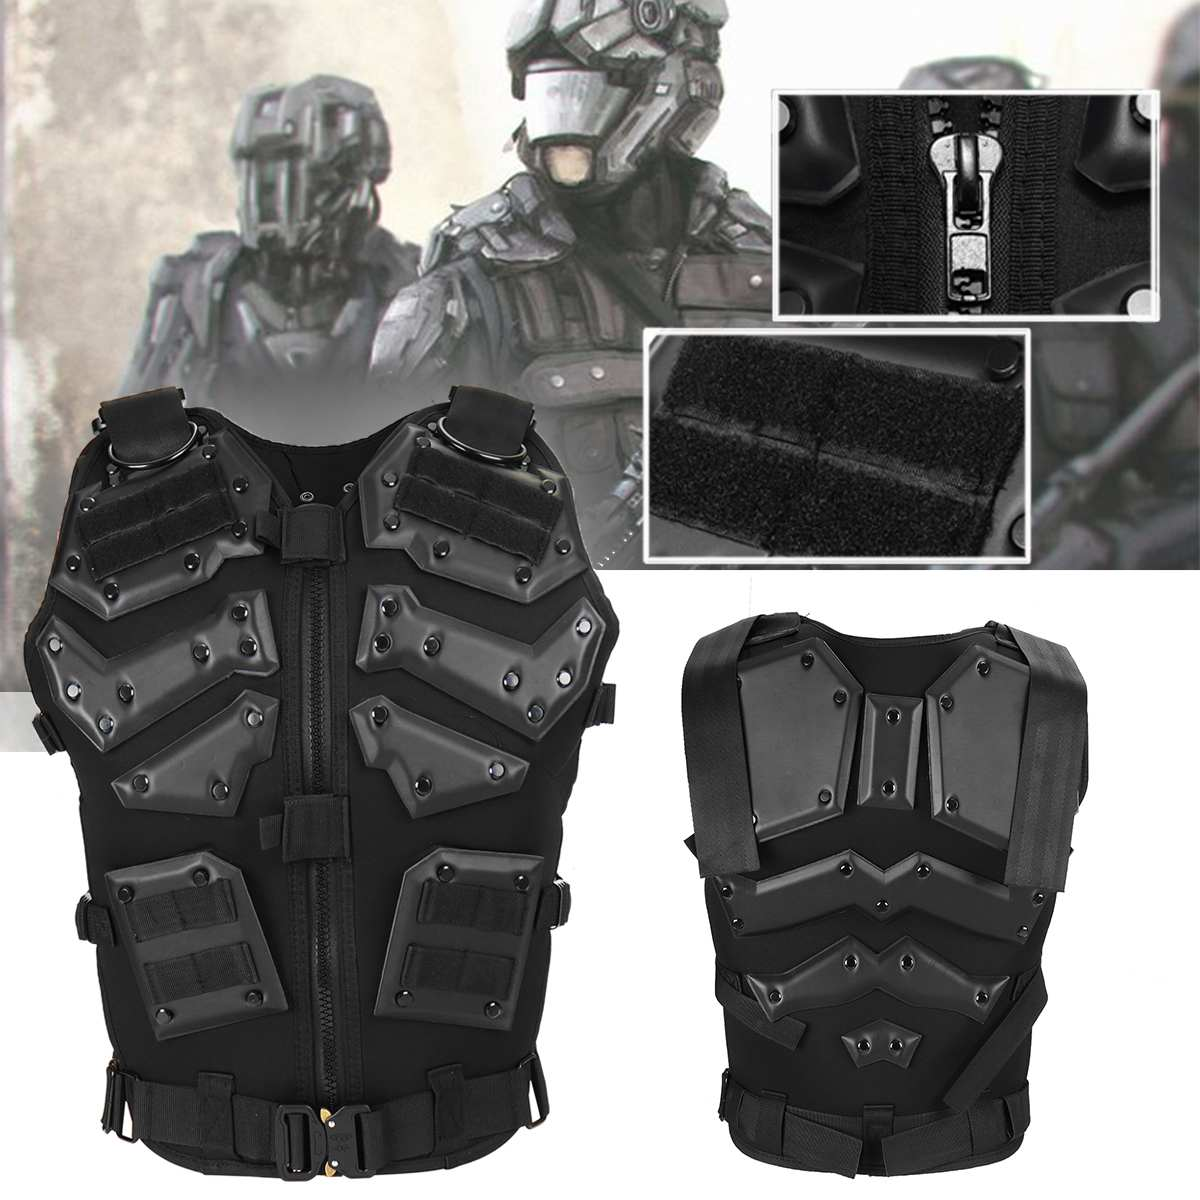 Airsoft Military Tactical Vest Molle Hunting Combat Body Armor Vest Outdoor Game Clothing Hunting Vest Training Protection